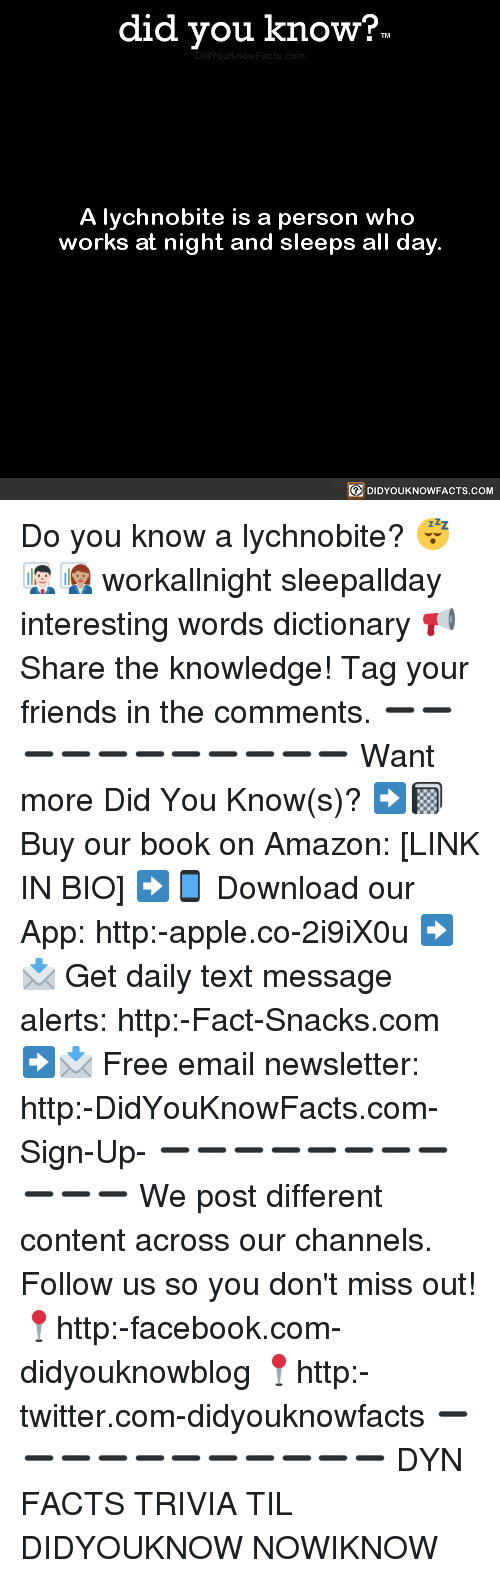 Amazon, Apple, and Facebook: did you know?  A lychnobite is a person who  works at night and sleeps all day  DIDYOUKNOWFACTS.COM Do you know a lychnobite? 😴👨🏻💼👩🏽💼 workallnight sleepallday interesting words dictionary 📢 Share the knowledge! Tag your friends in the comments. ➖➖➖➖➖➖➖➖➖➖➖ Want more Did You Know(s)? ➡📓 Buy our book on Amazon: [LINK IN BIO] ➡📱 Download our App: http:-apple.co-2i9iX0u ➡📩 Get daily text message alerts: http:-Fact-Snacks.com ➡📩 Free email newsletter: http:-DidYouKnowFacts.com-Sign-Up- ➖➖➖➖➖➖➖➖➖➖➖ We post different content across our channels. Follow us so you don't miss out! 📍http:-facebook.com-didyouknowblog 📍http:-twitter.com-didyouknowfacts ➖➖➖➖➖➖➖➖➖➖➖ DYN FACTS TRIVIA TIL DIDYOUKNOW NOWIKNOW